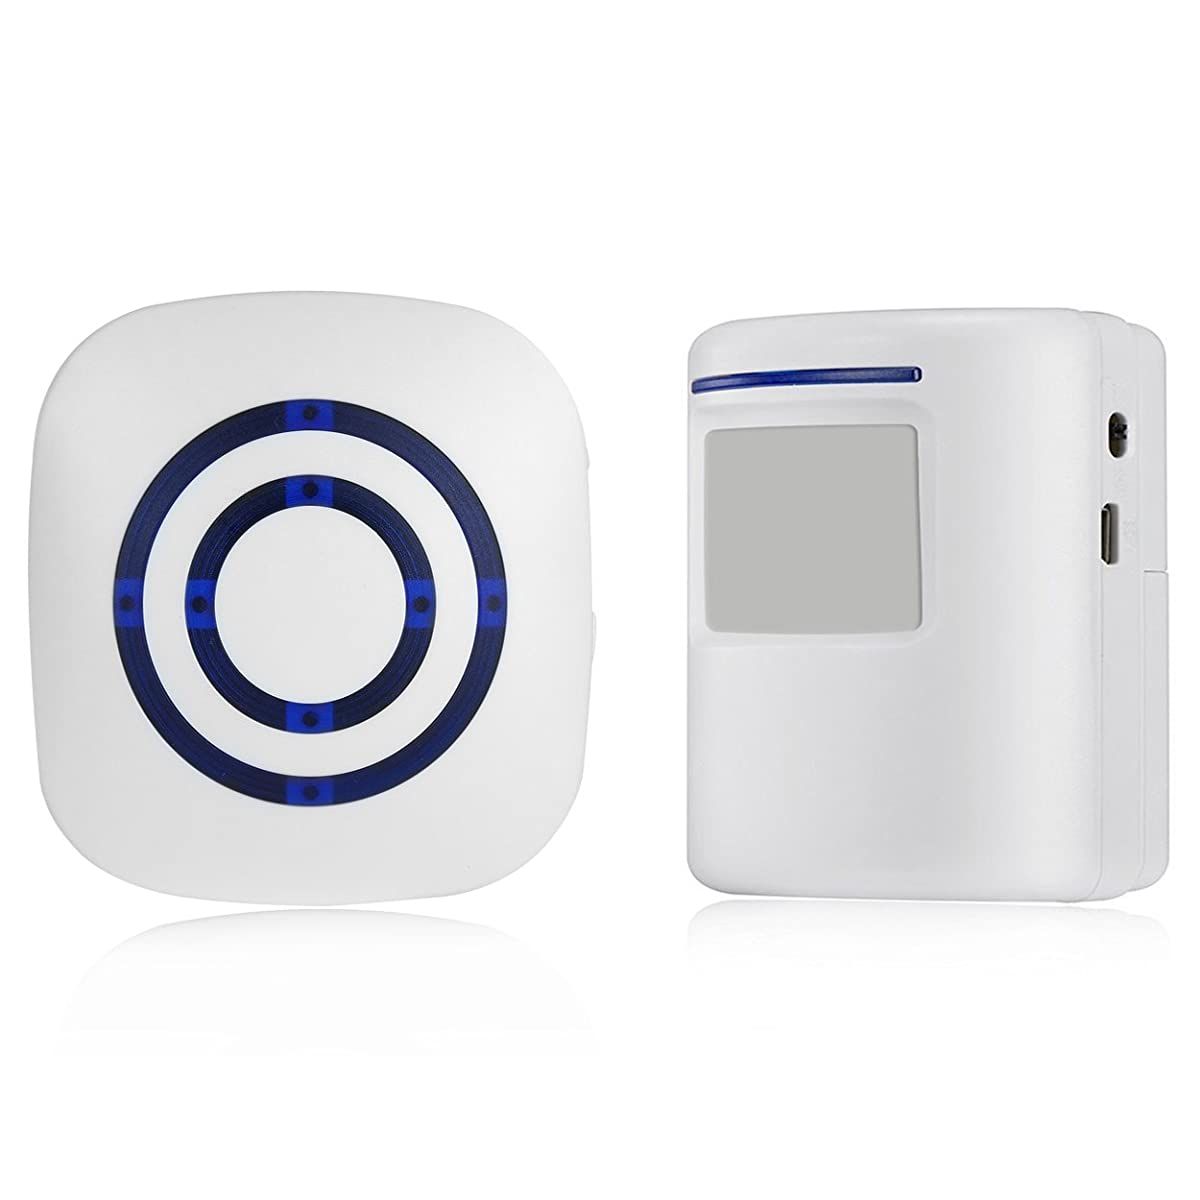 Wireless Driveway Alert Doorbell,Home Security Alarm, Smart Entry Alert  Welcome Visitor Door Chime White Infrared Motion Sensor Portable ...